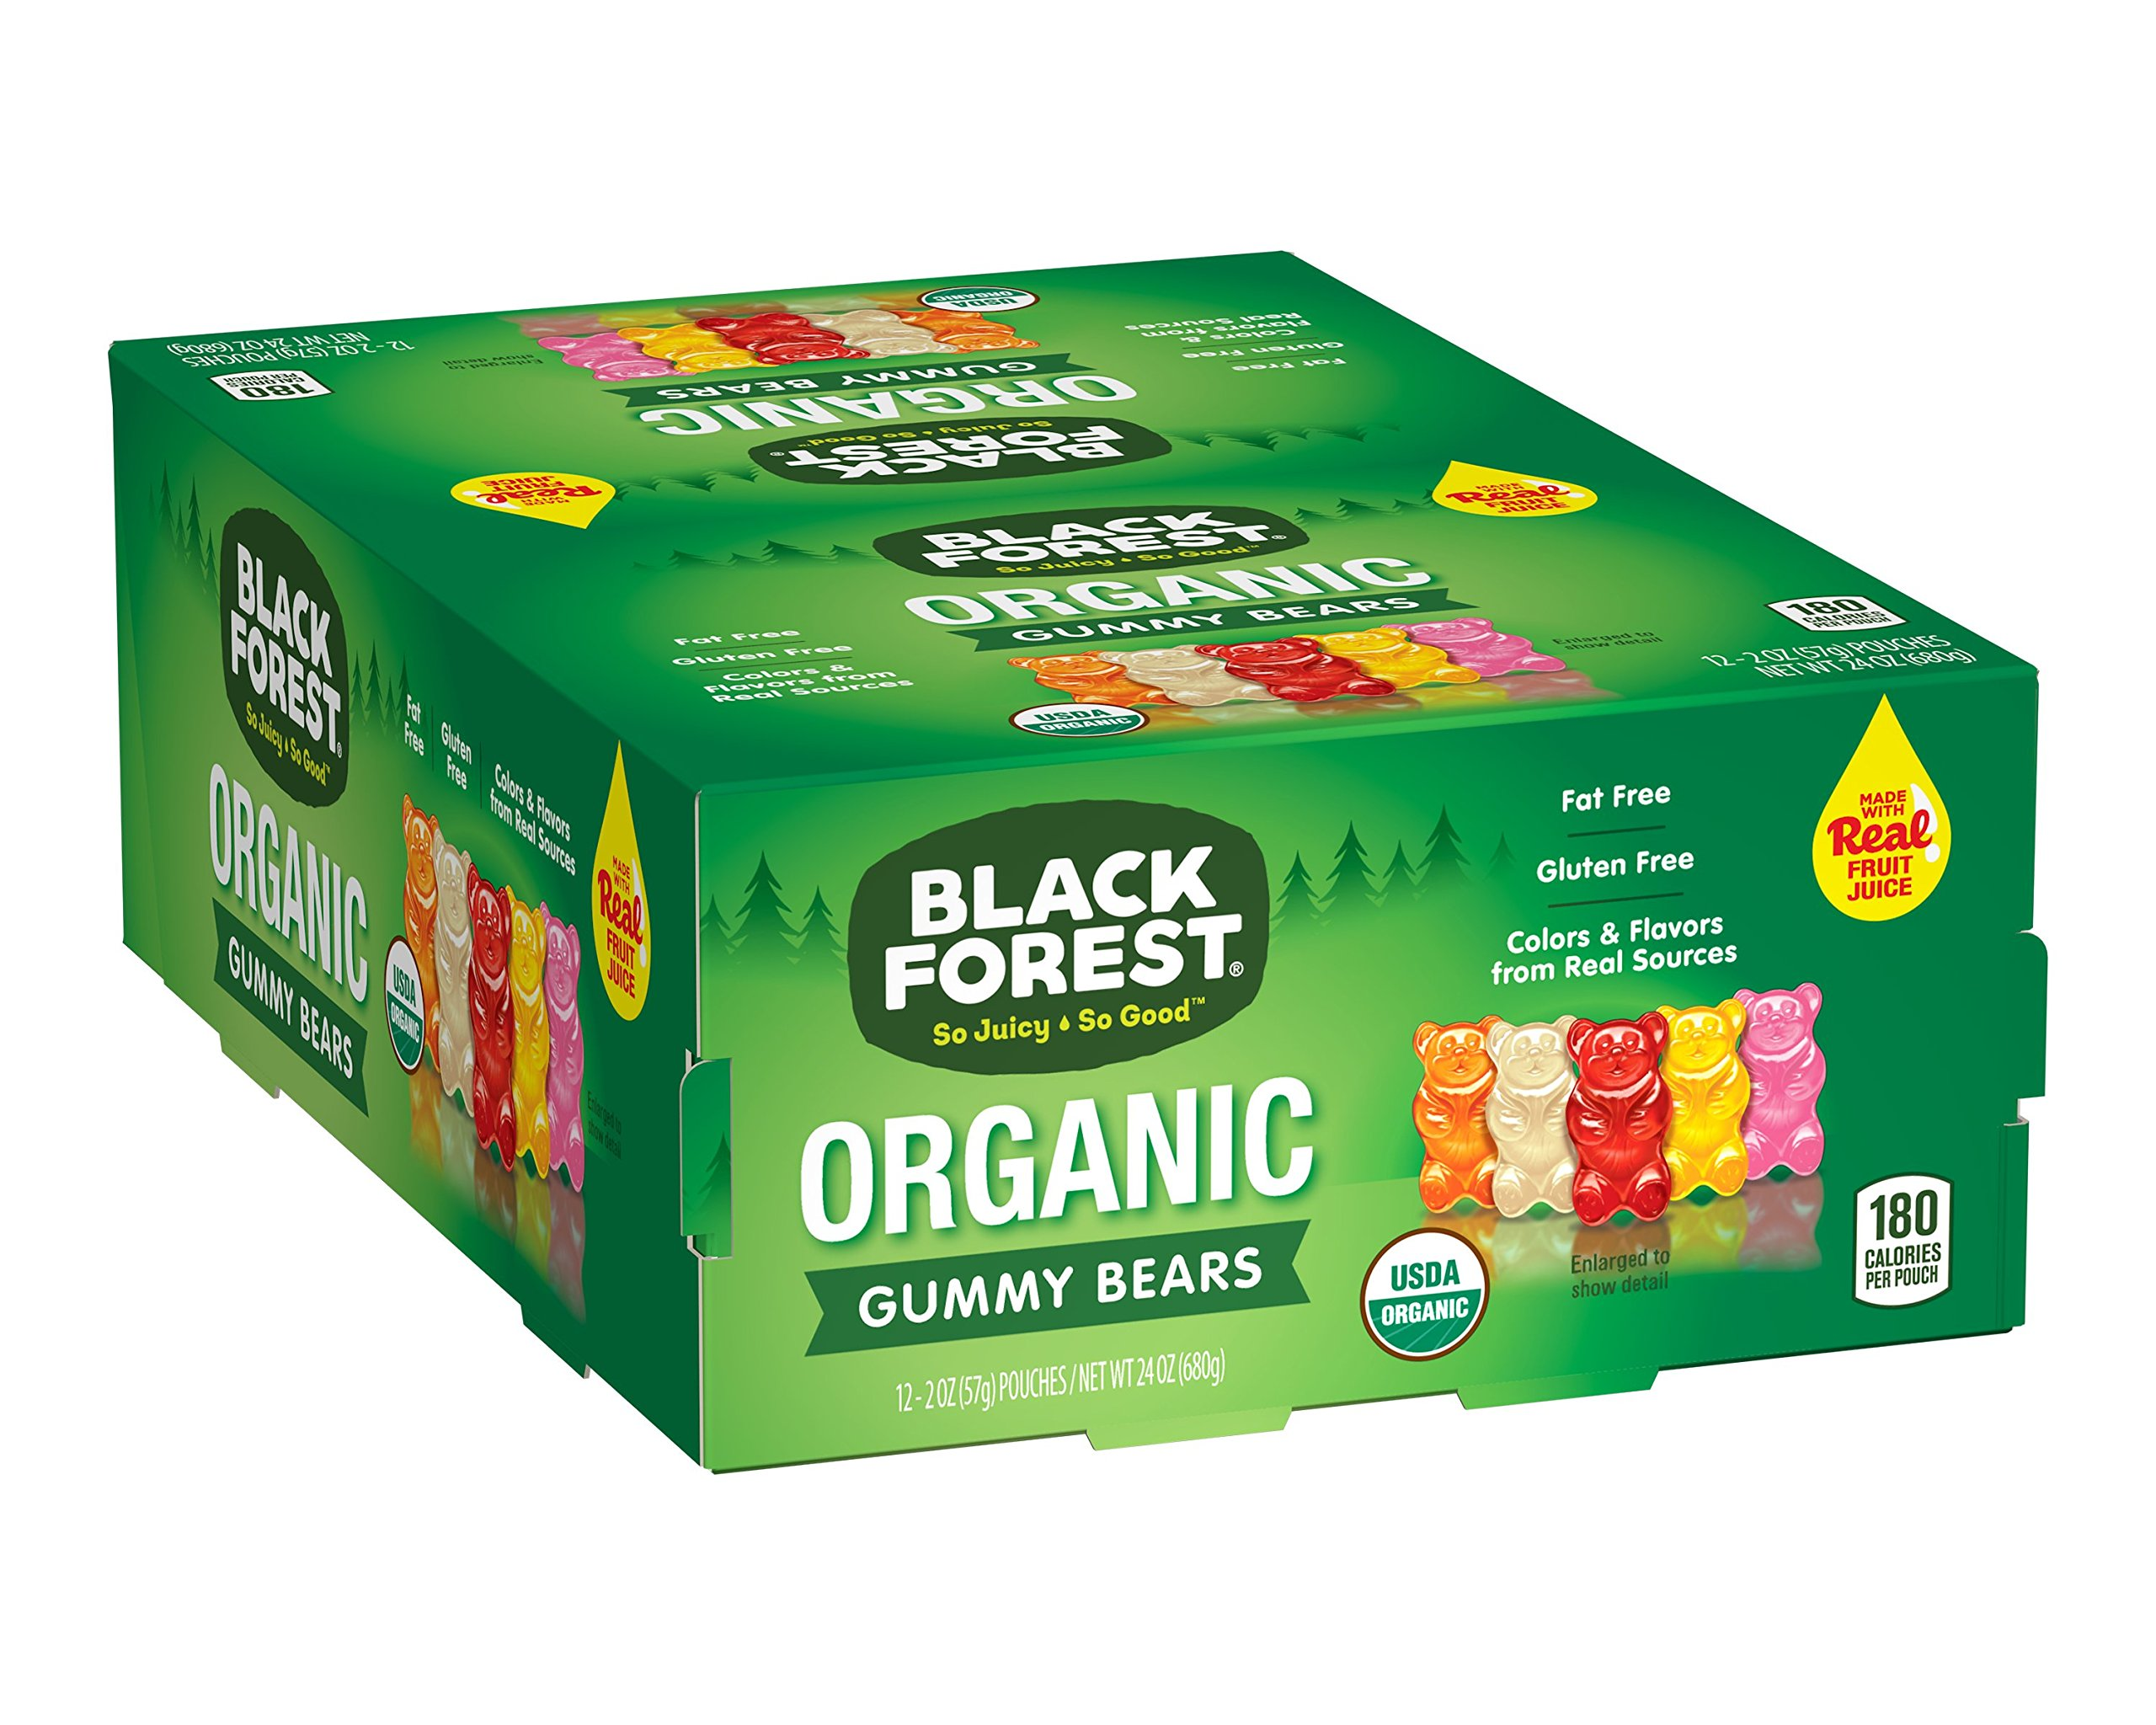 Black Forest Organic Gummy Bears Candy, 2-Ounce Bag (Pack of 12)